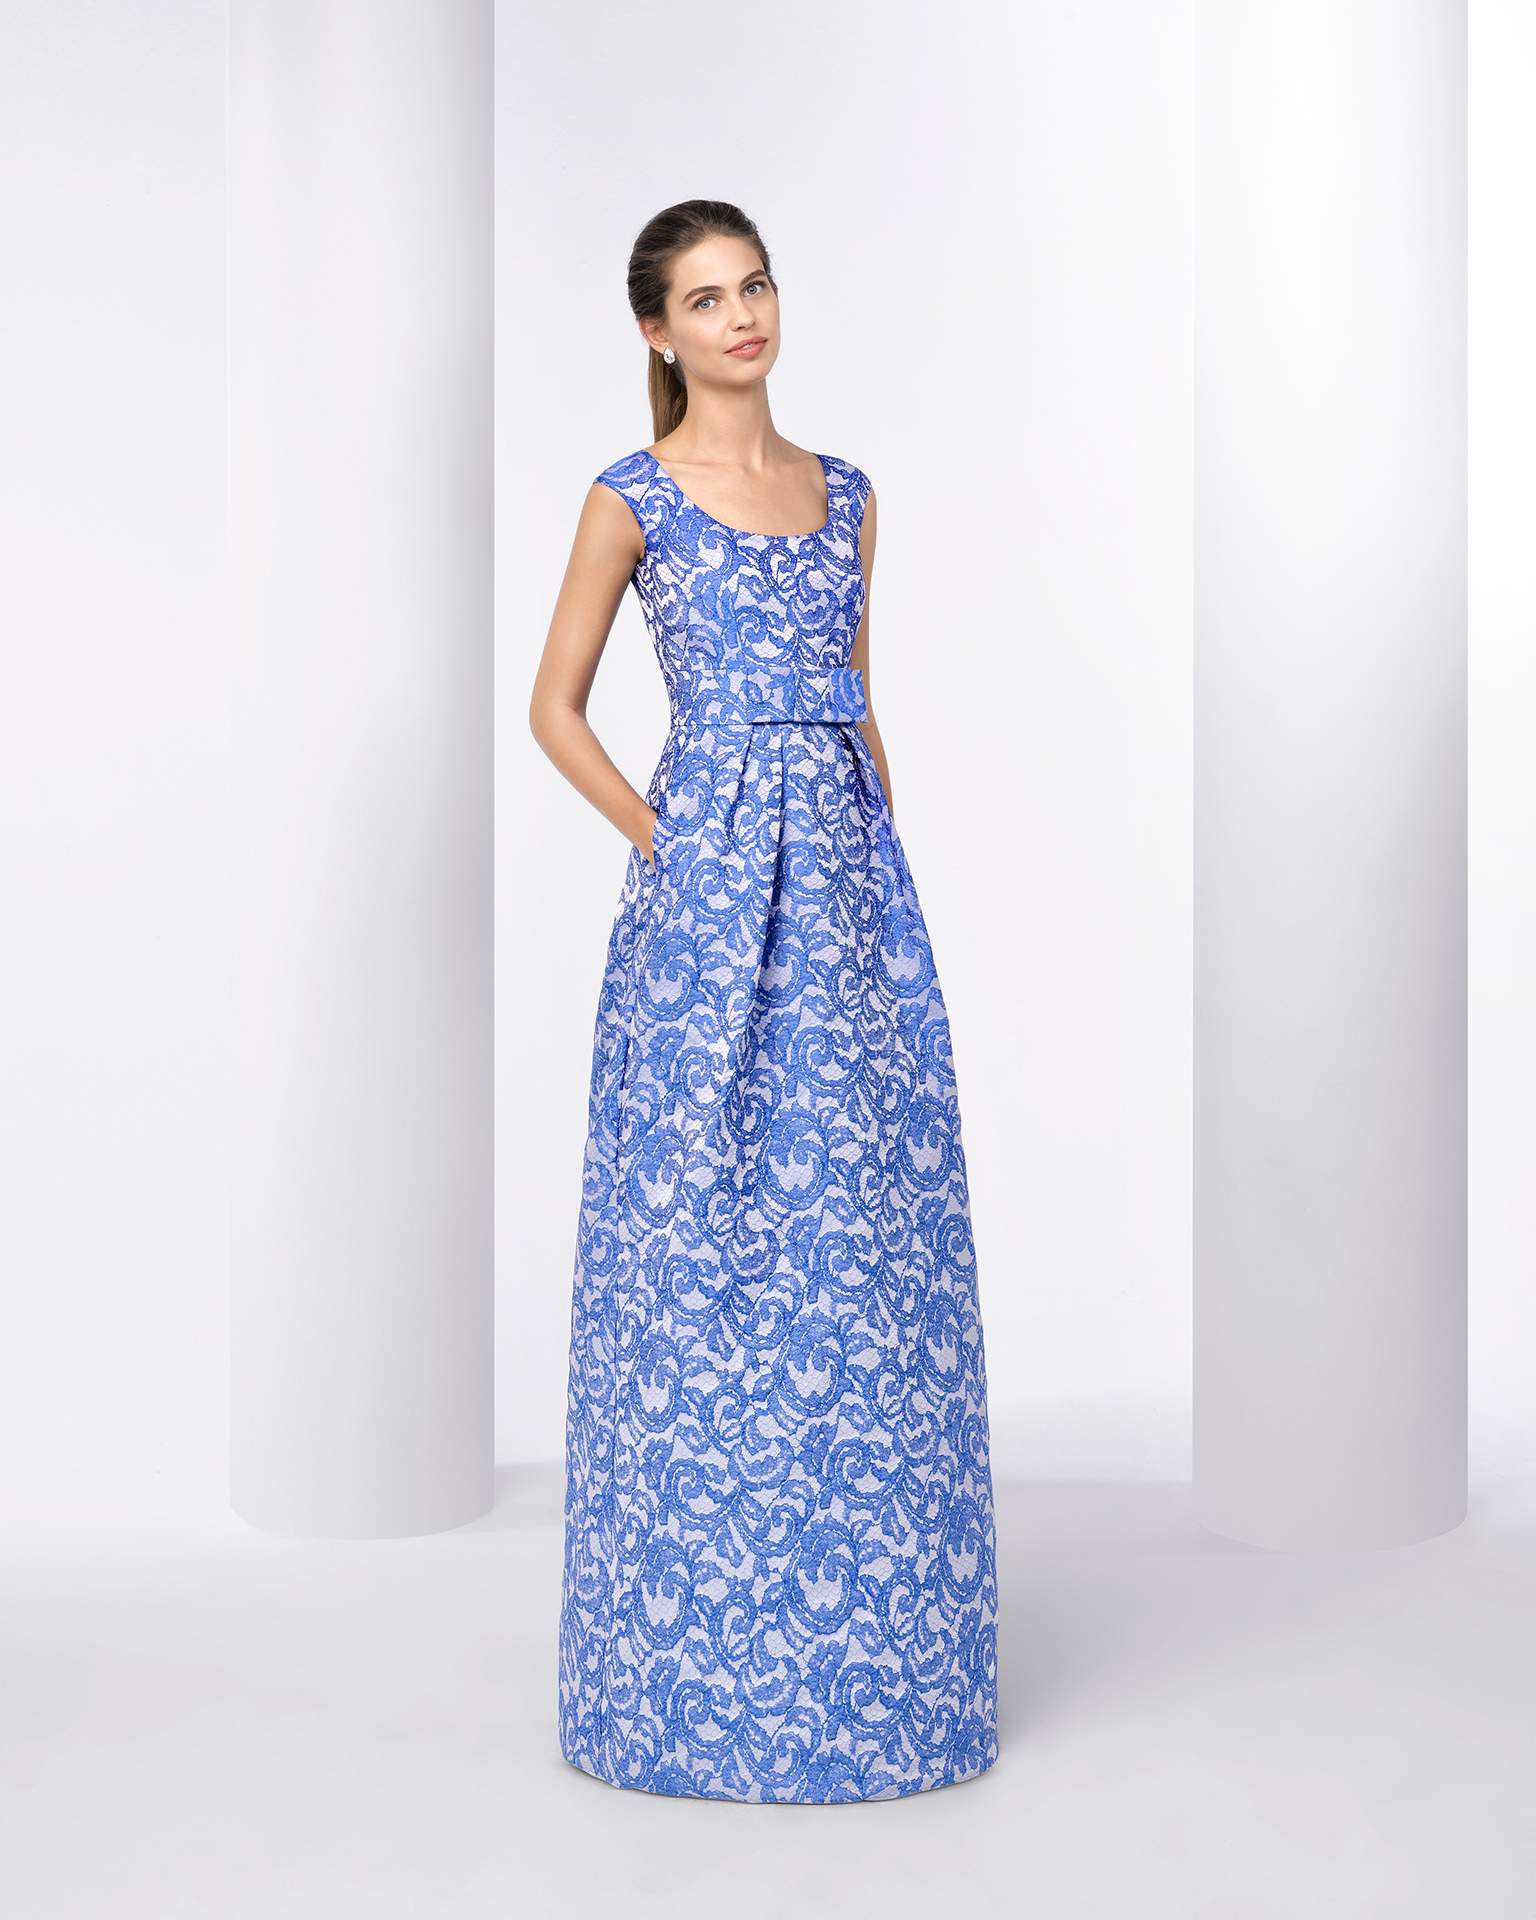 Long brocade cocktail dress with round neckline, structured full skirt with pockets and detail on waist. Available in blue and pink. 2018 FIESTA AIRE BARCELONA Collection.